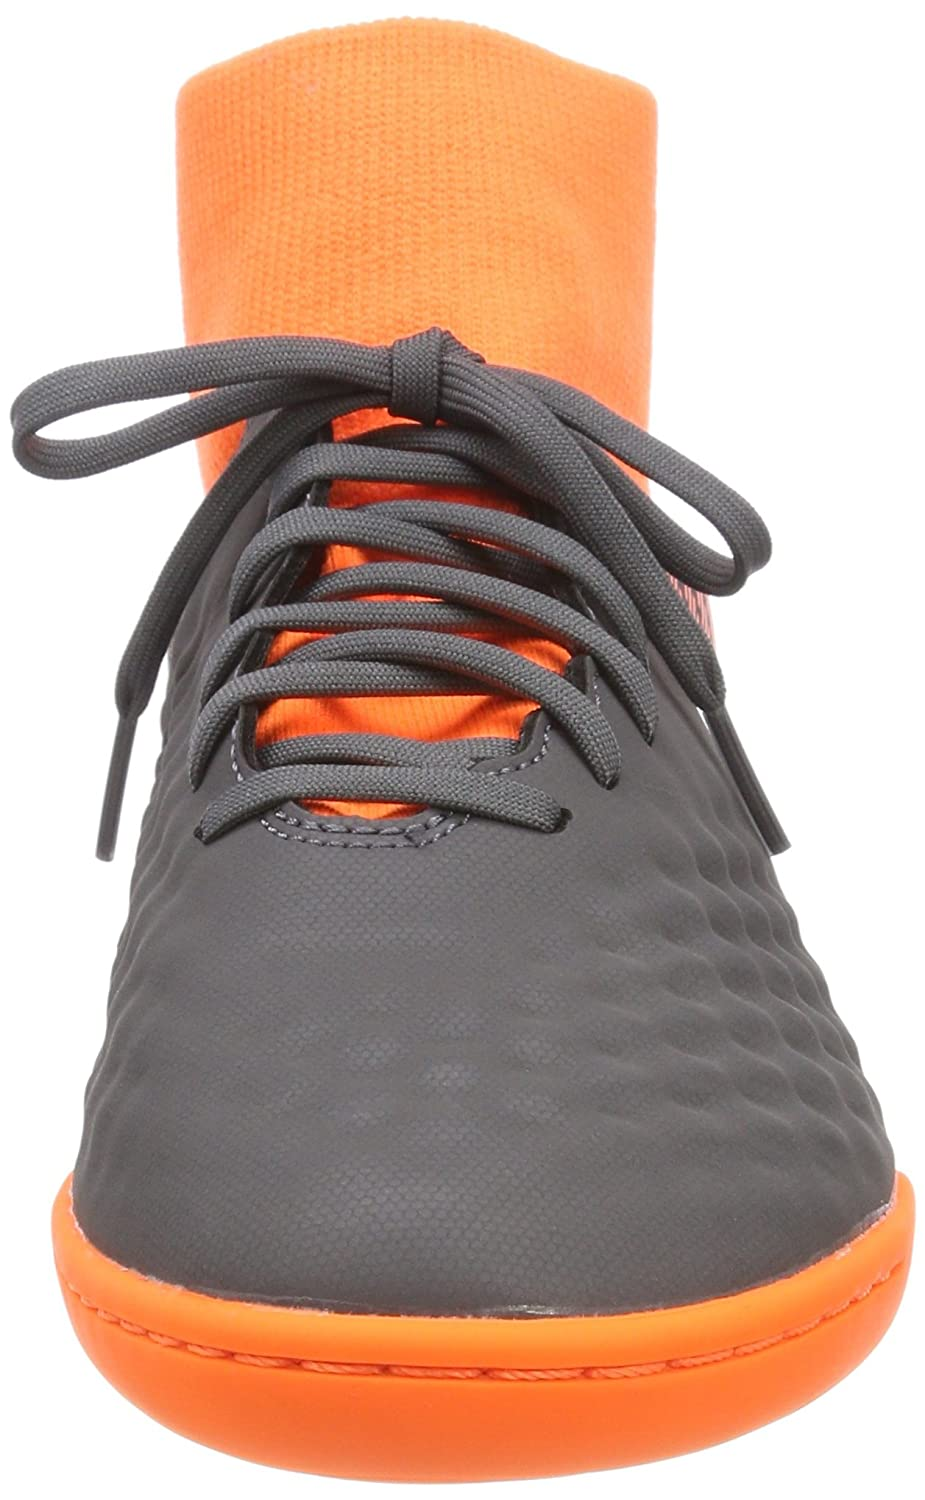 quality design e72e9 40405 Nike Men s s Magista Obrax 2 Academy Dynamic Fit Ic Football Boots   Amazon.co.uk  Shoes   Bags